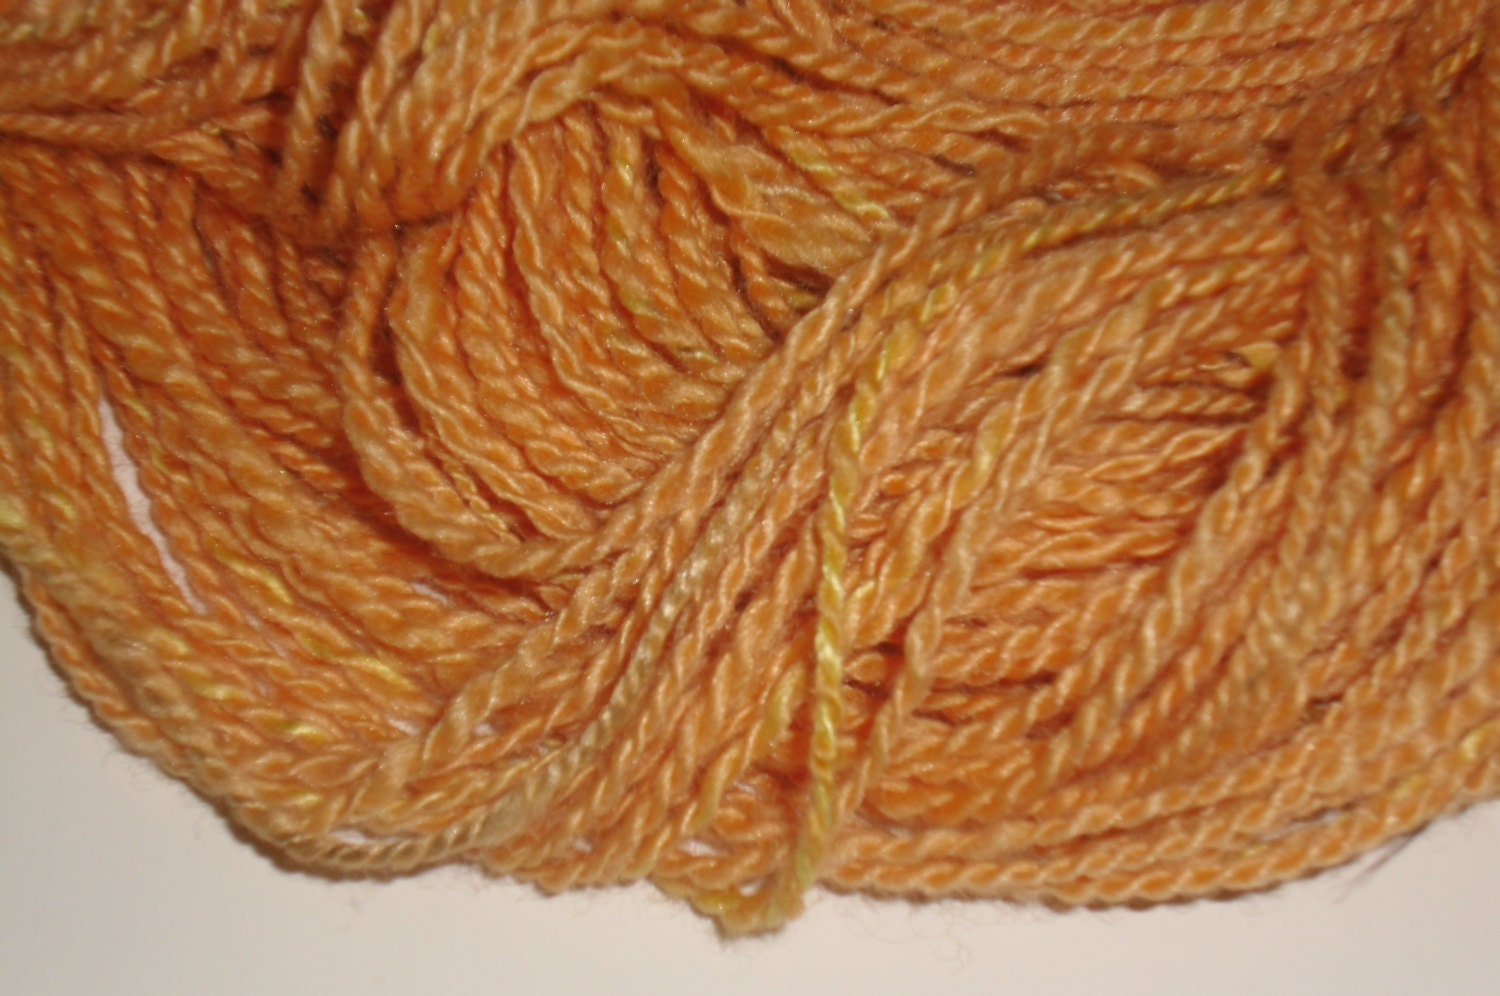 Madder, Saffron, and Onion Skin Dyed Handspun Yarn - SirenSongYarnsFiber